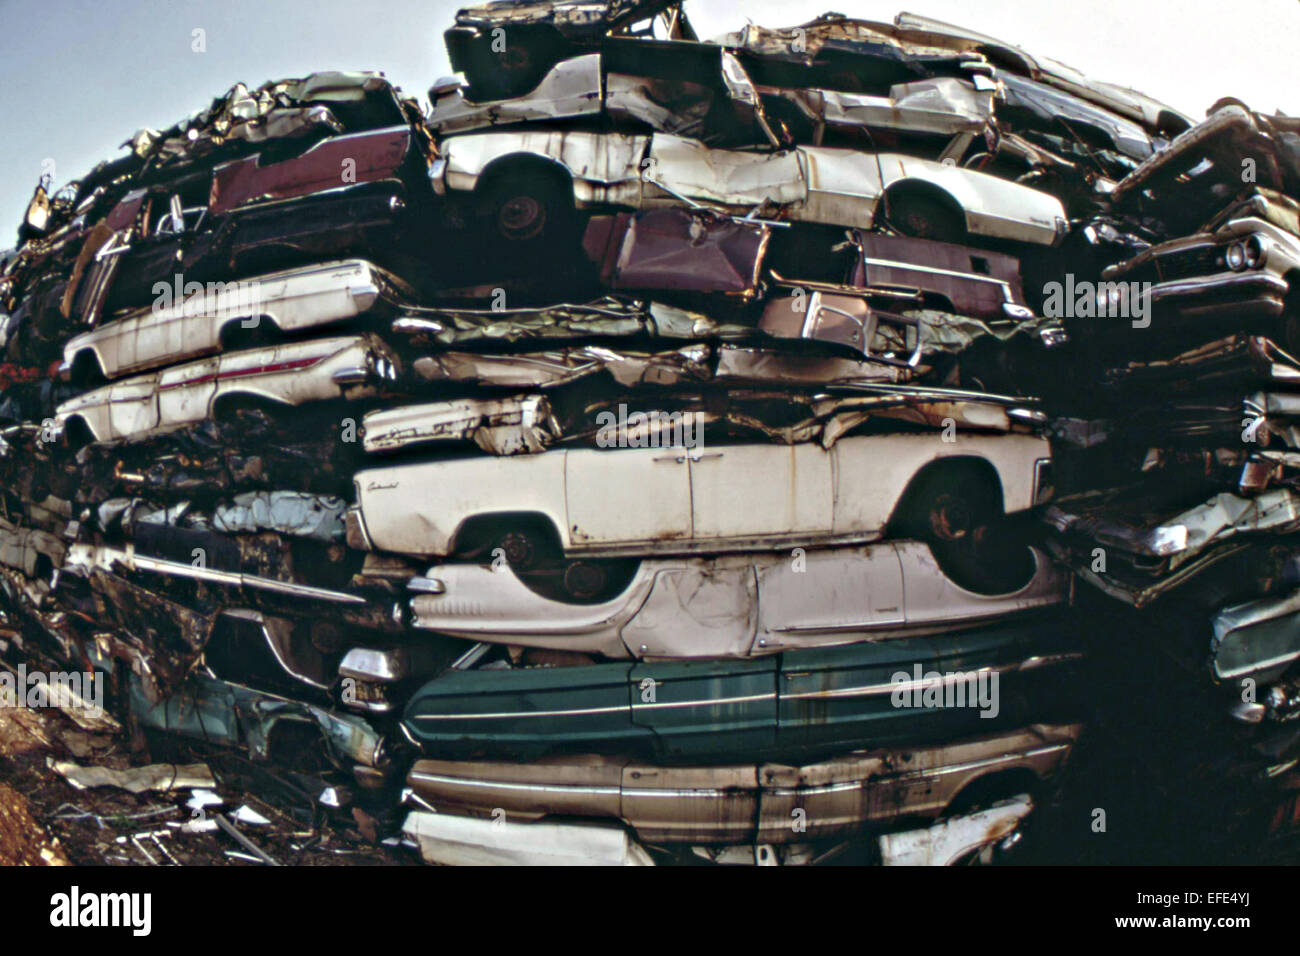 Junked automobiles stacked in a junkyard crushed for use as scrap metal August 1973 in Philadelphia, PA. - Stock Image